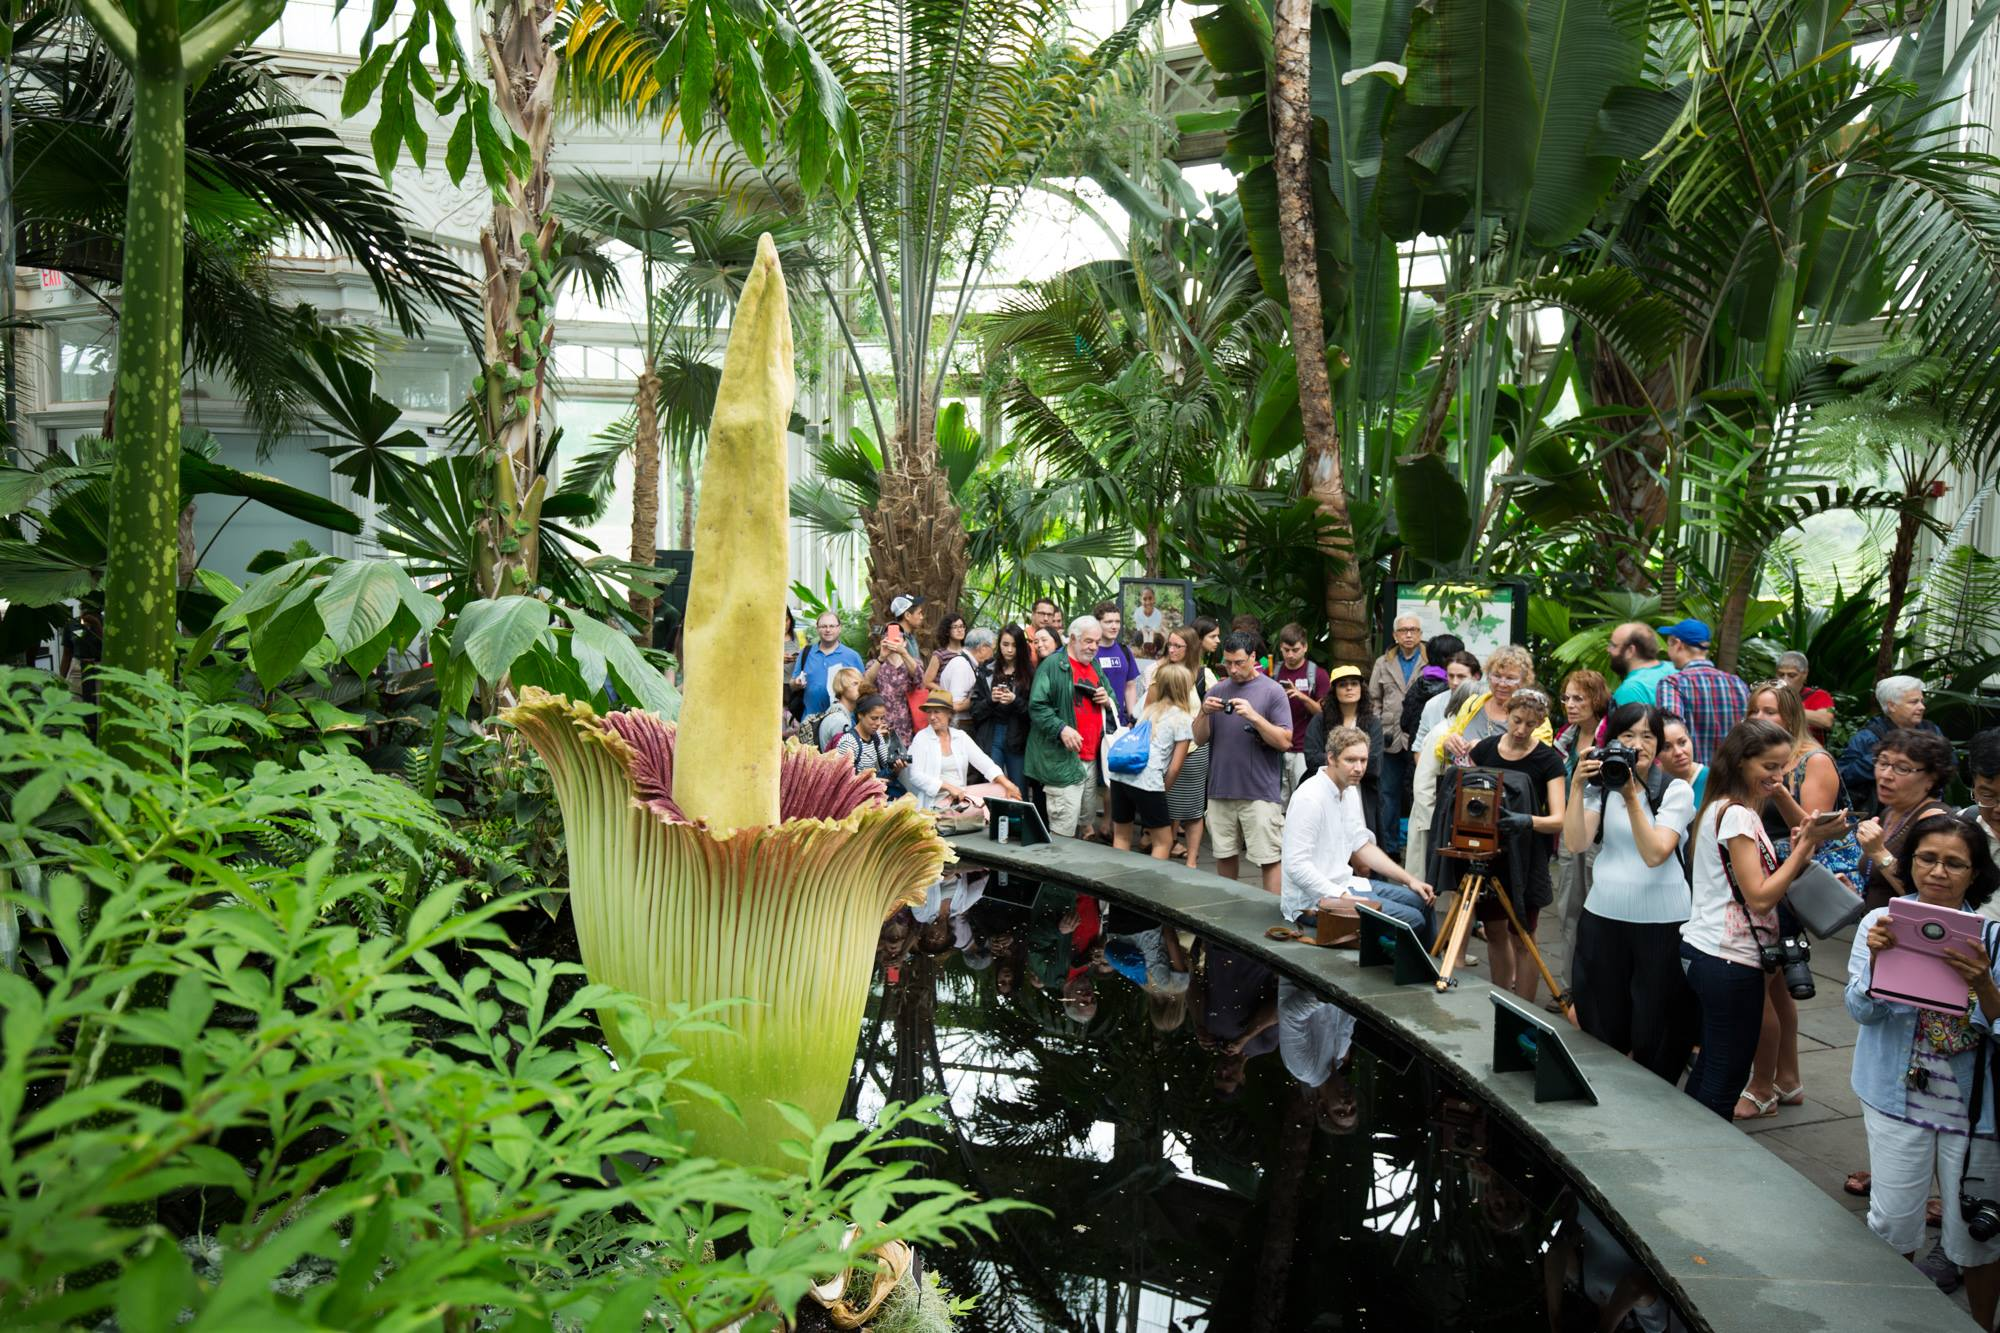 About the Blooming of the Corpse Flower Titan Arum